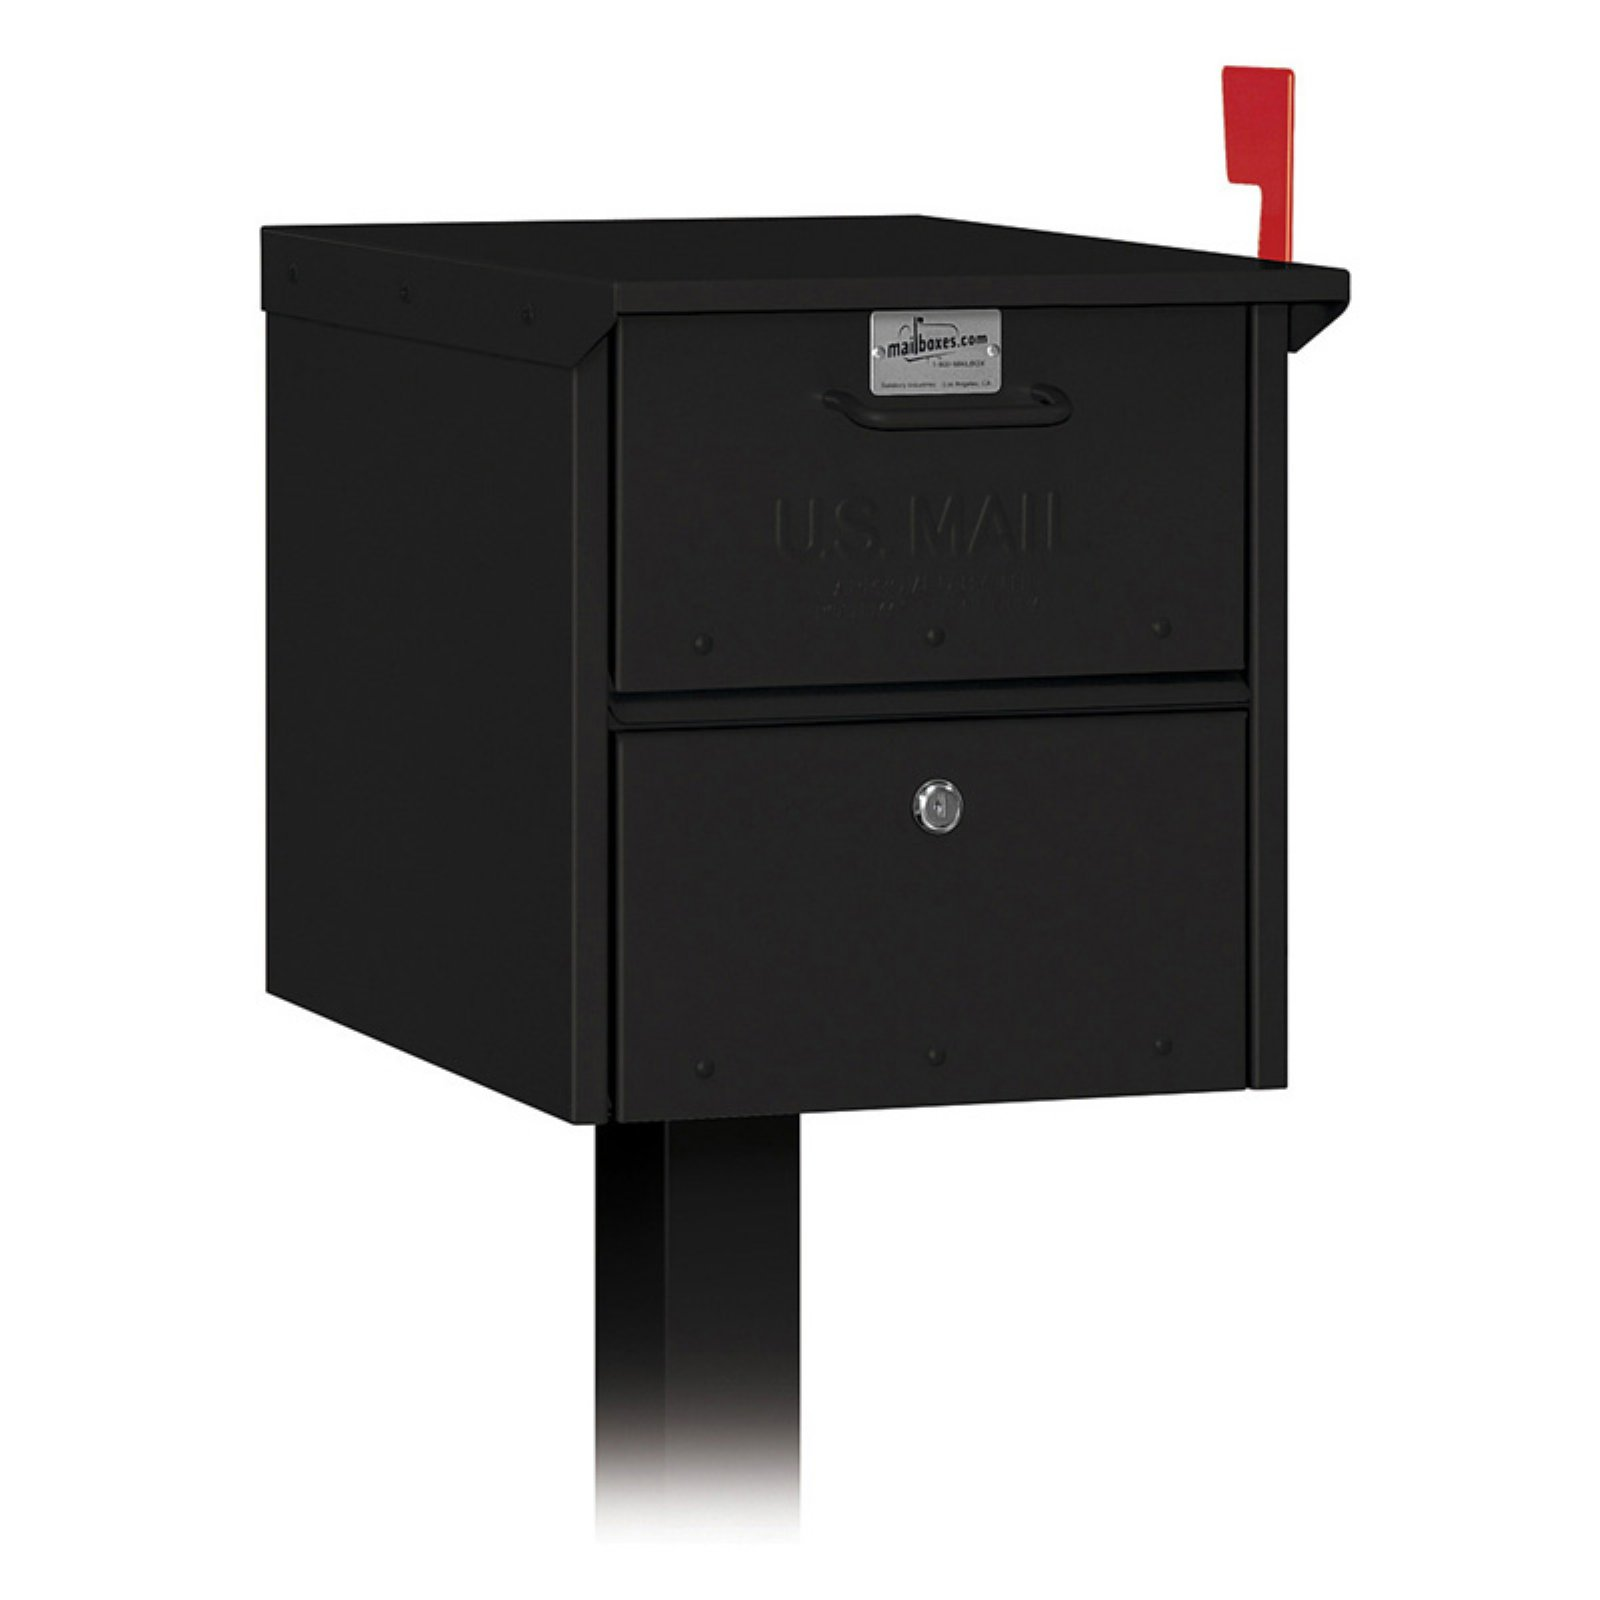 Salsbury Roadside Mailbox by Salsbury industries